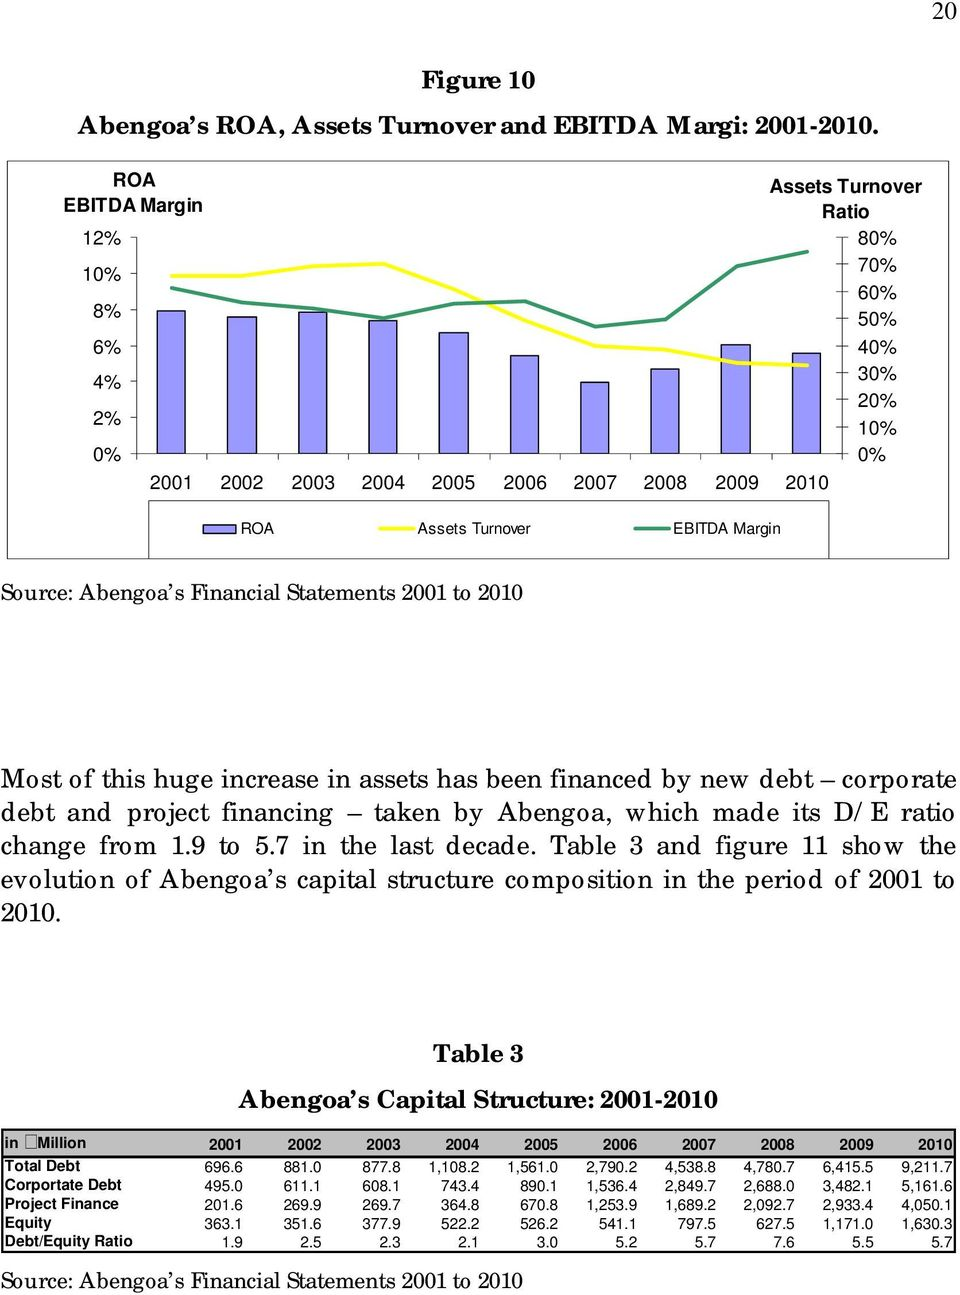 Financial Statements 2001 to 2010 Most of this huge increase in assets has been financed by new debt corporate debt and project financing taken by Abengoa, which made its D/E ratio change from 1.